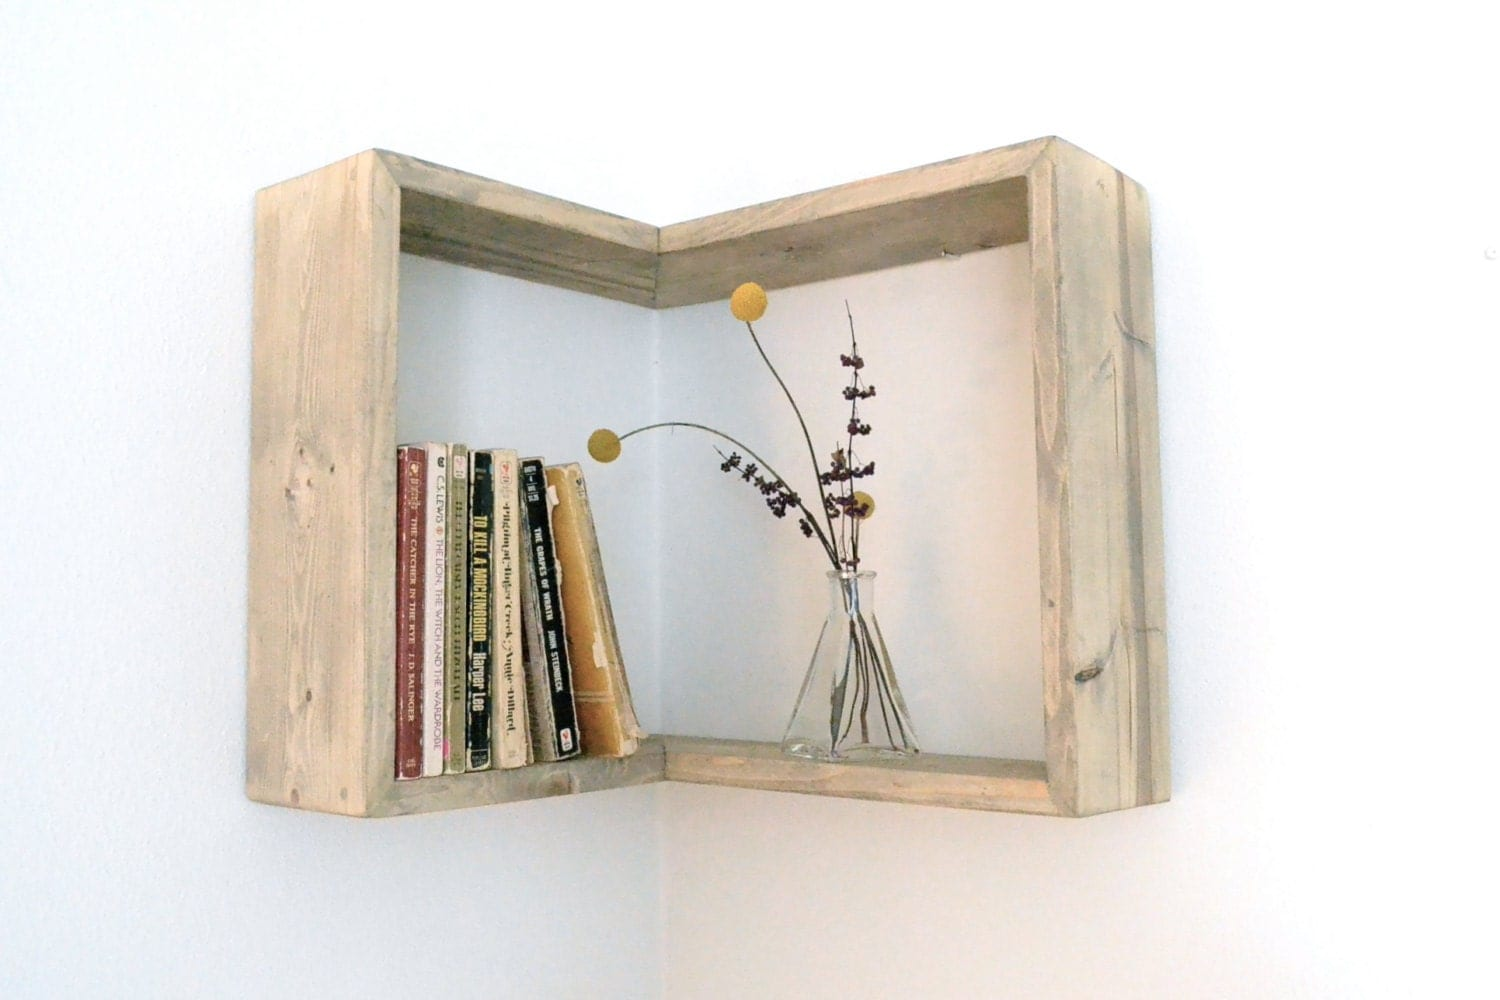 Uncategorized Corner Shel corner box shelf